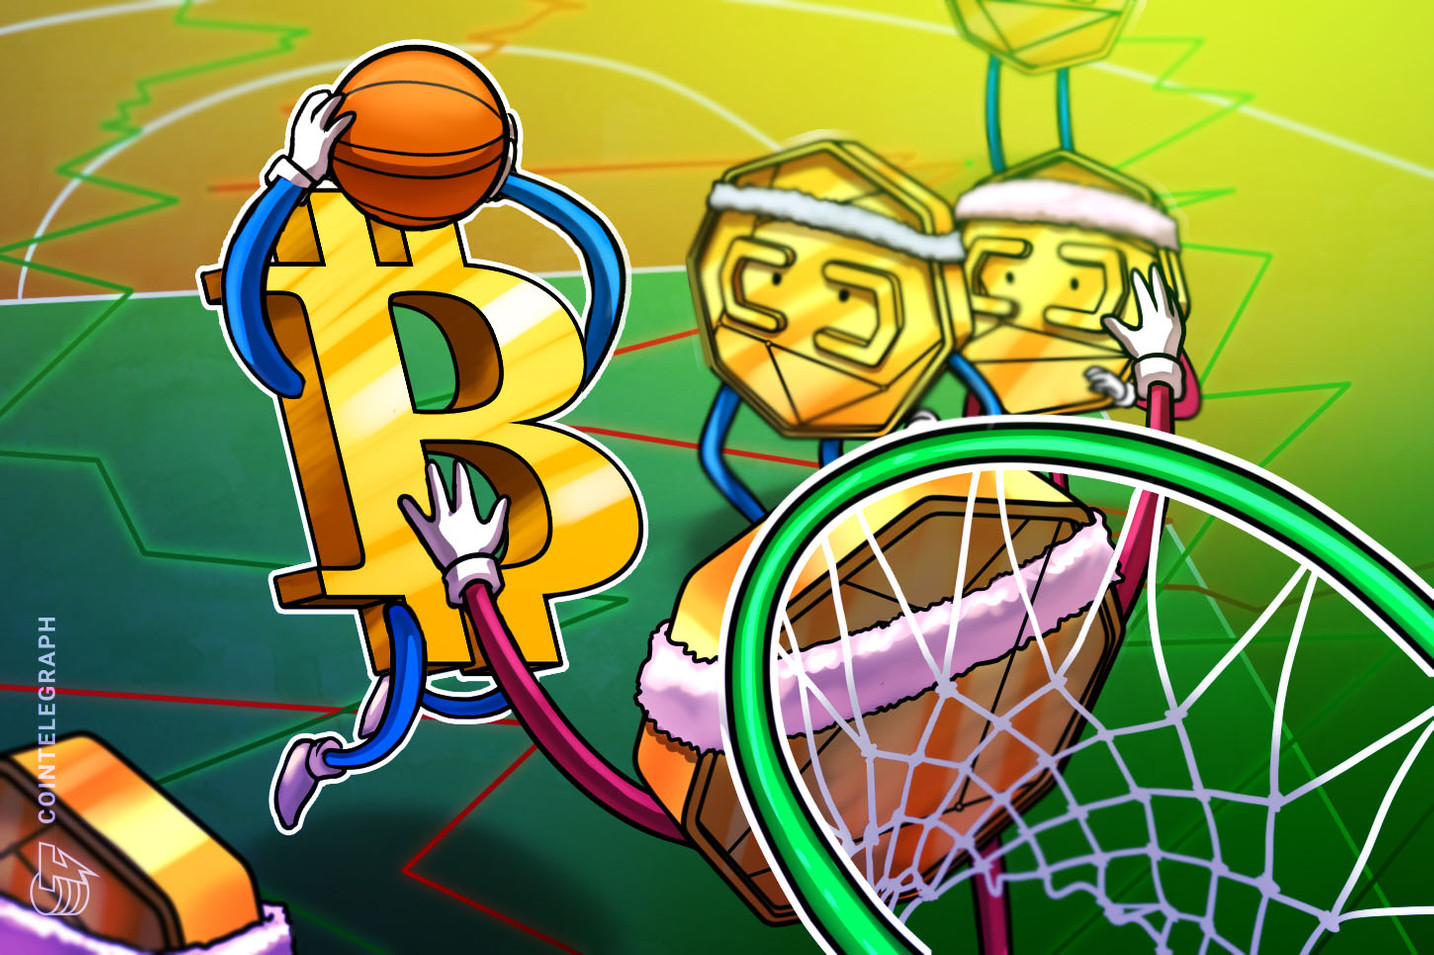 Bitcoin Price $9.5K Resistance Puts BTC Halving Rally in Jeopardy